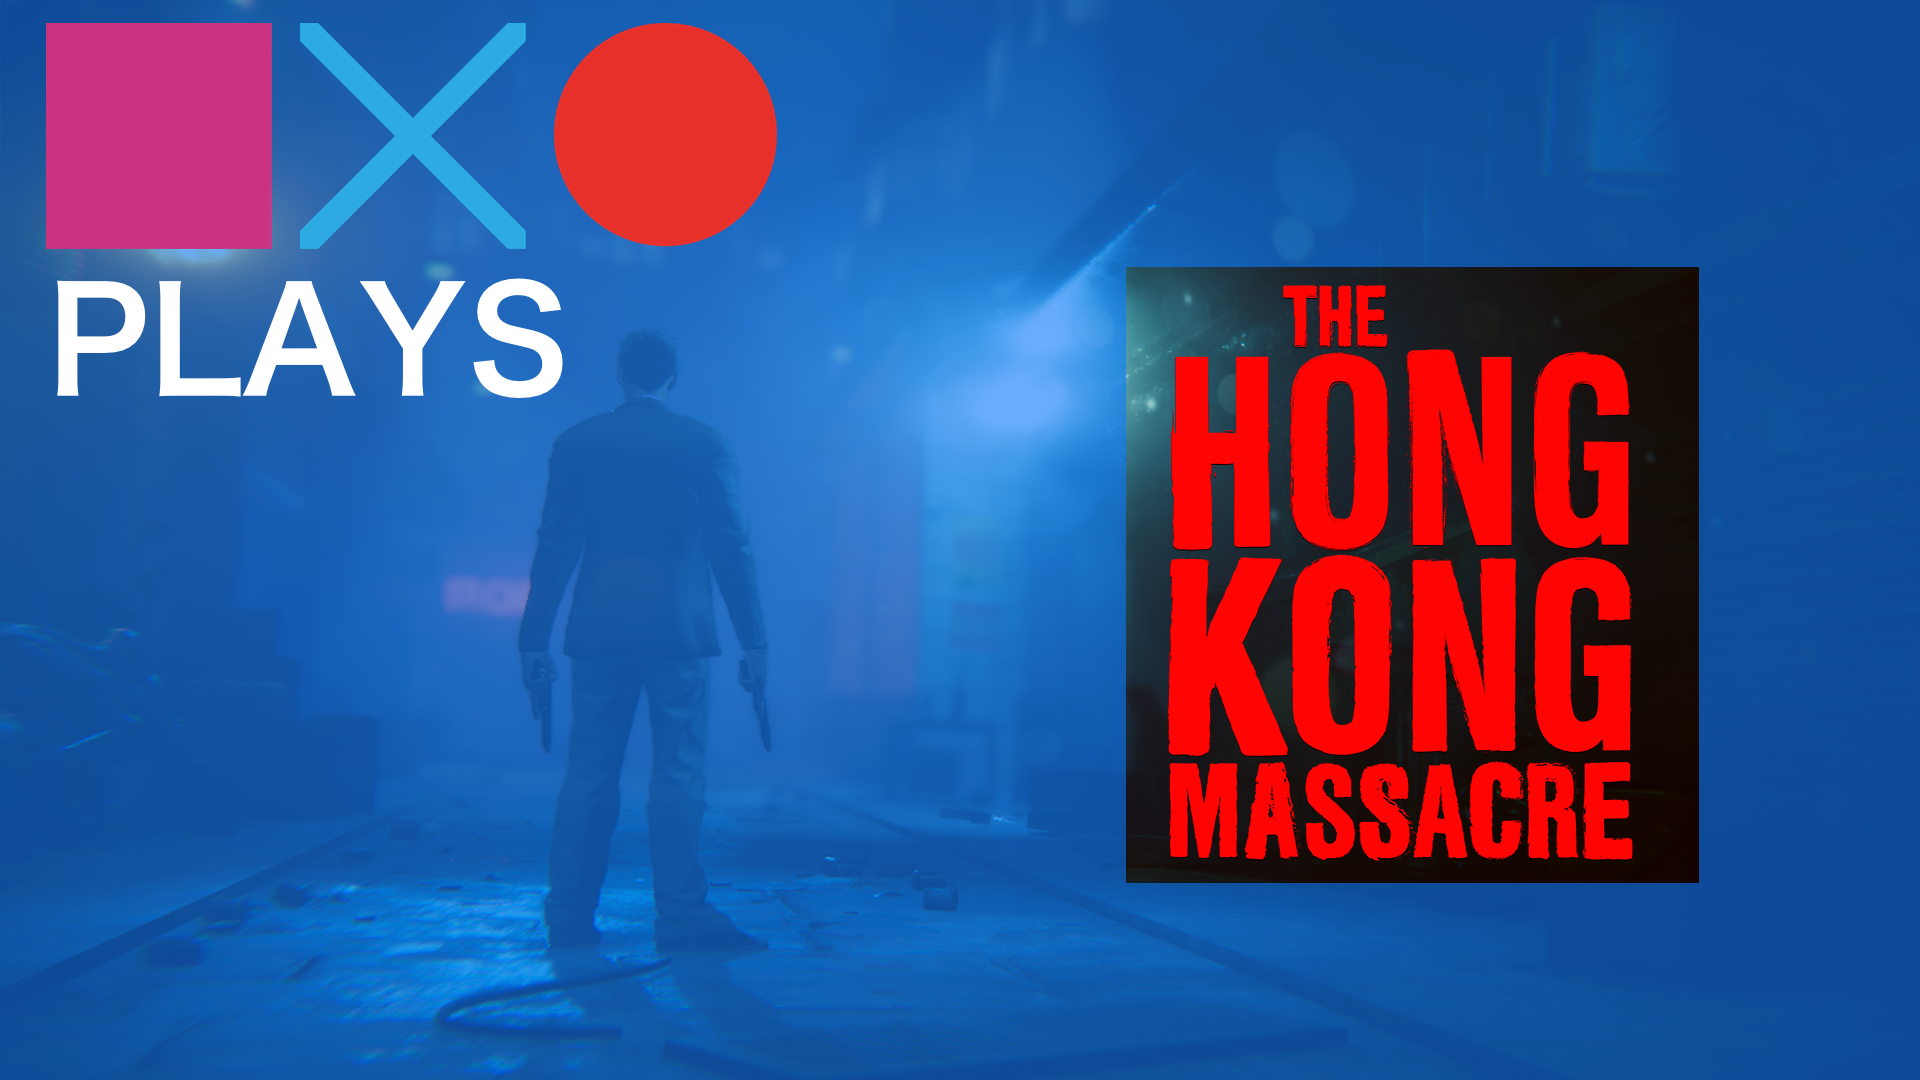 The Hong Kong Massacre | SquareXO Plays